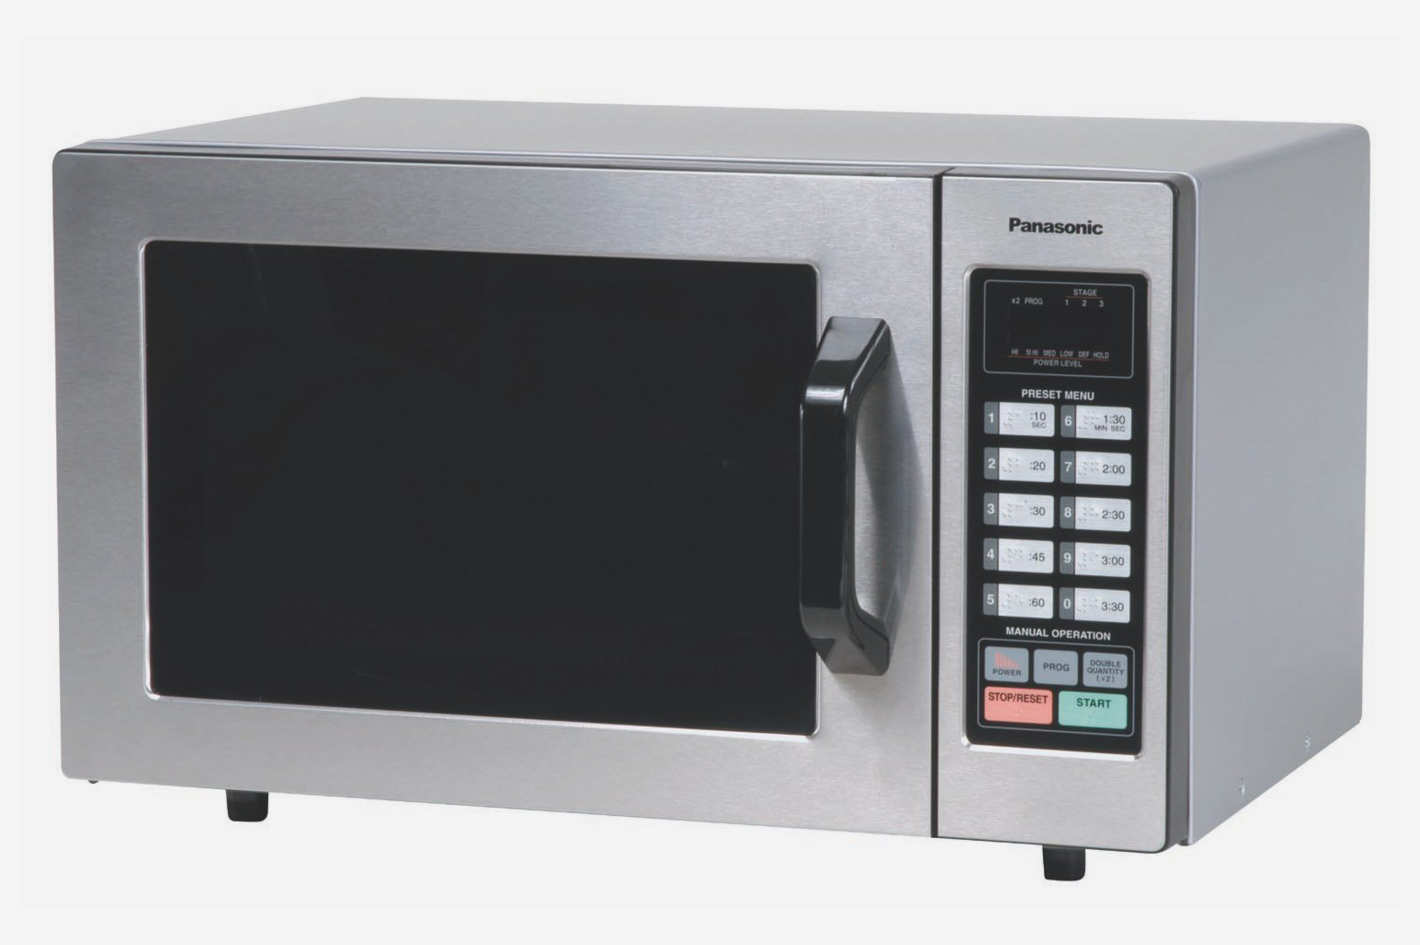 Best Commercial Grade Countertop Microwave Without A Turntable Panasonic Ne 1054f Stainless 1000w 0 8 Cu Ft Oven